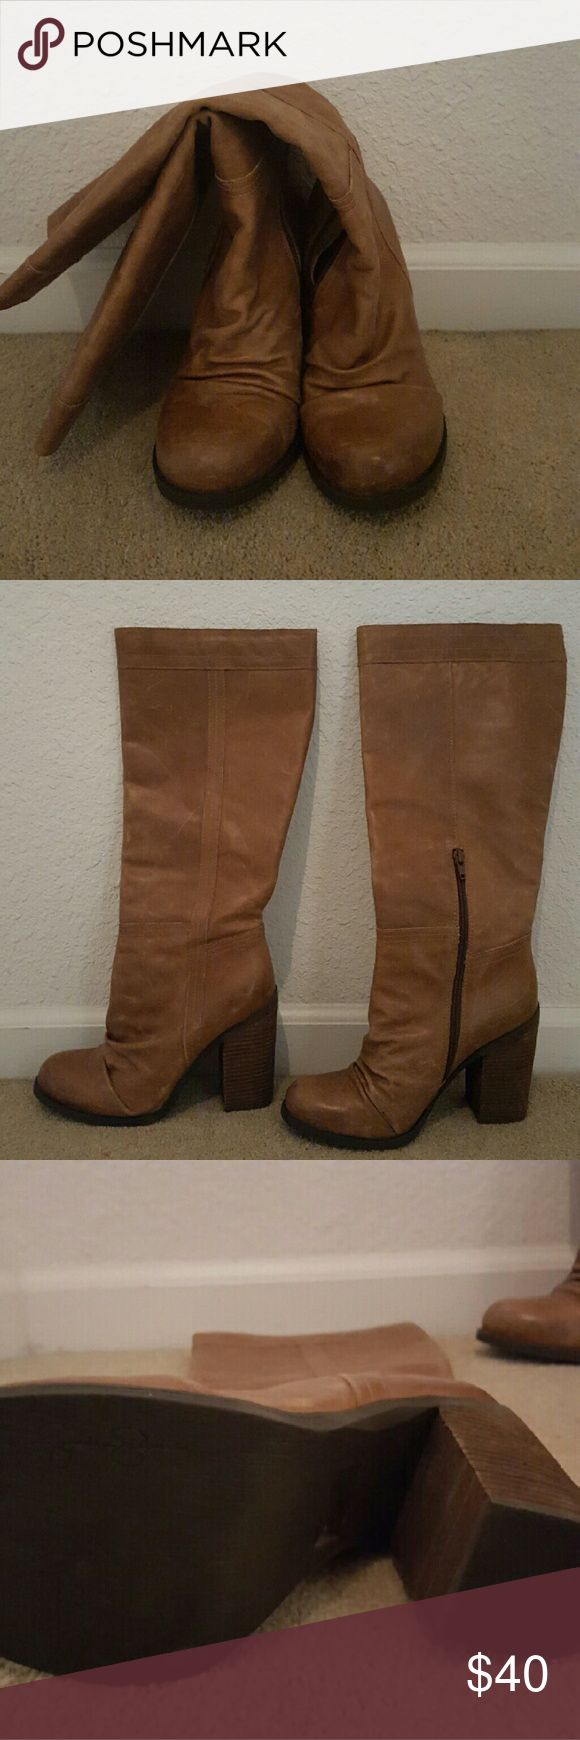 Jessica Simpson Boots Distressed leather boots, Jessica Simpson Shoes Heeled Boots